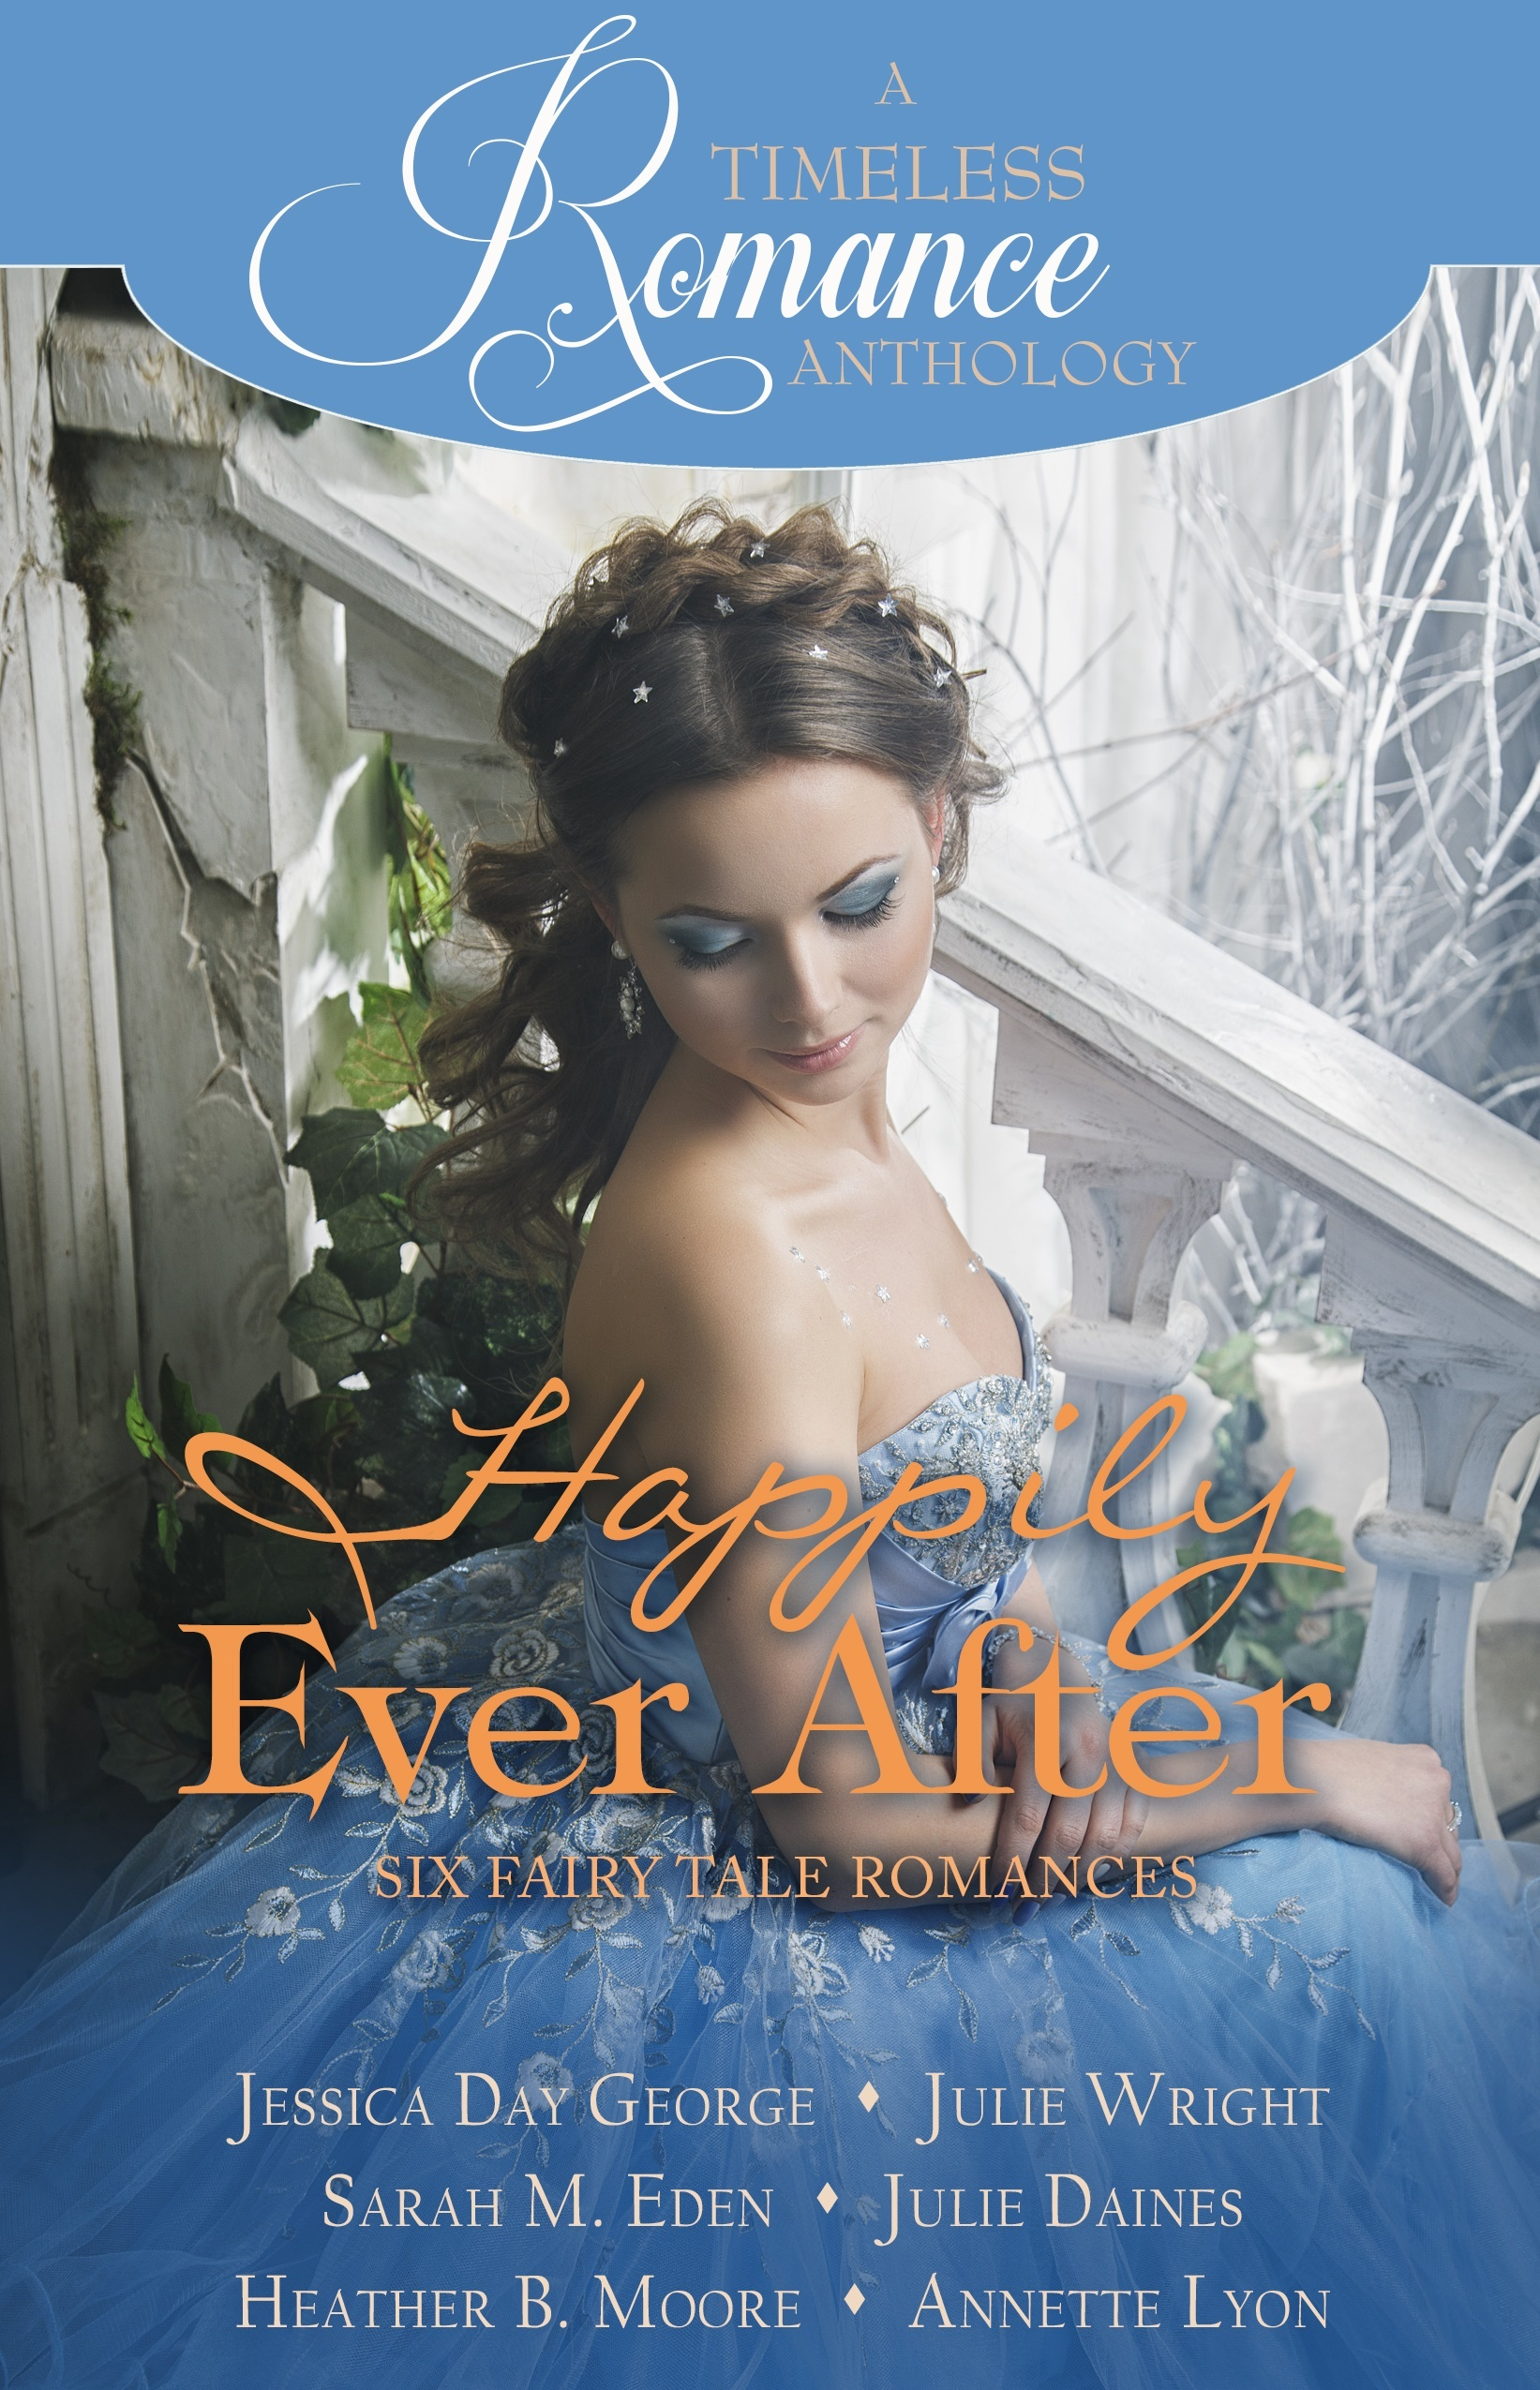 After-Happily-Ever-After Anthology